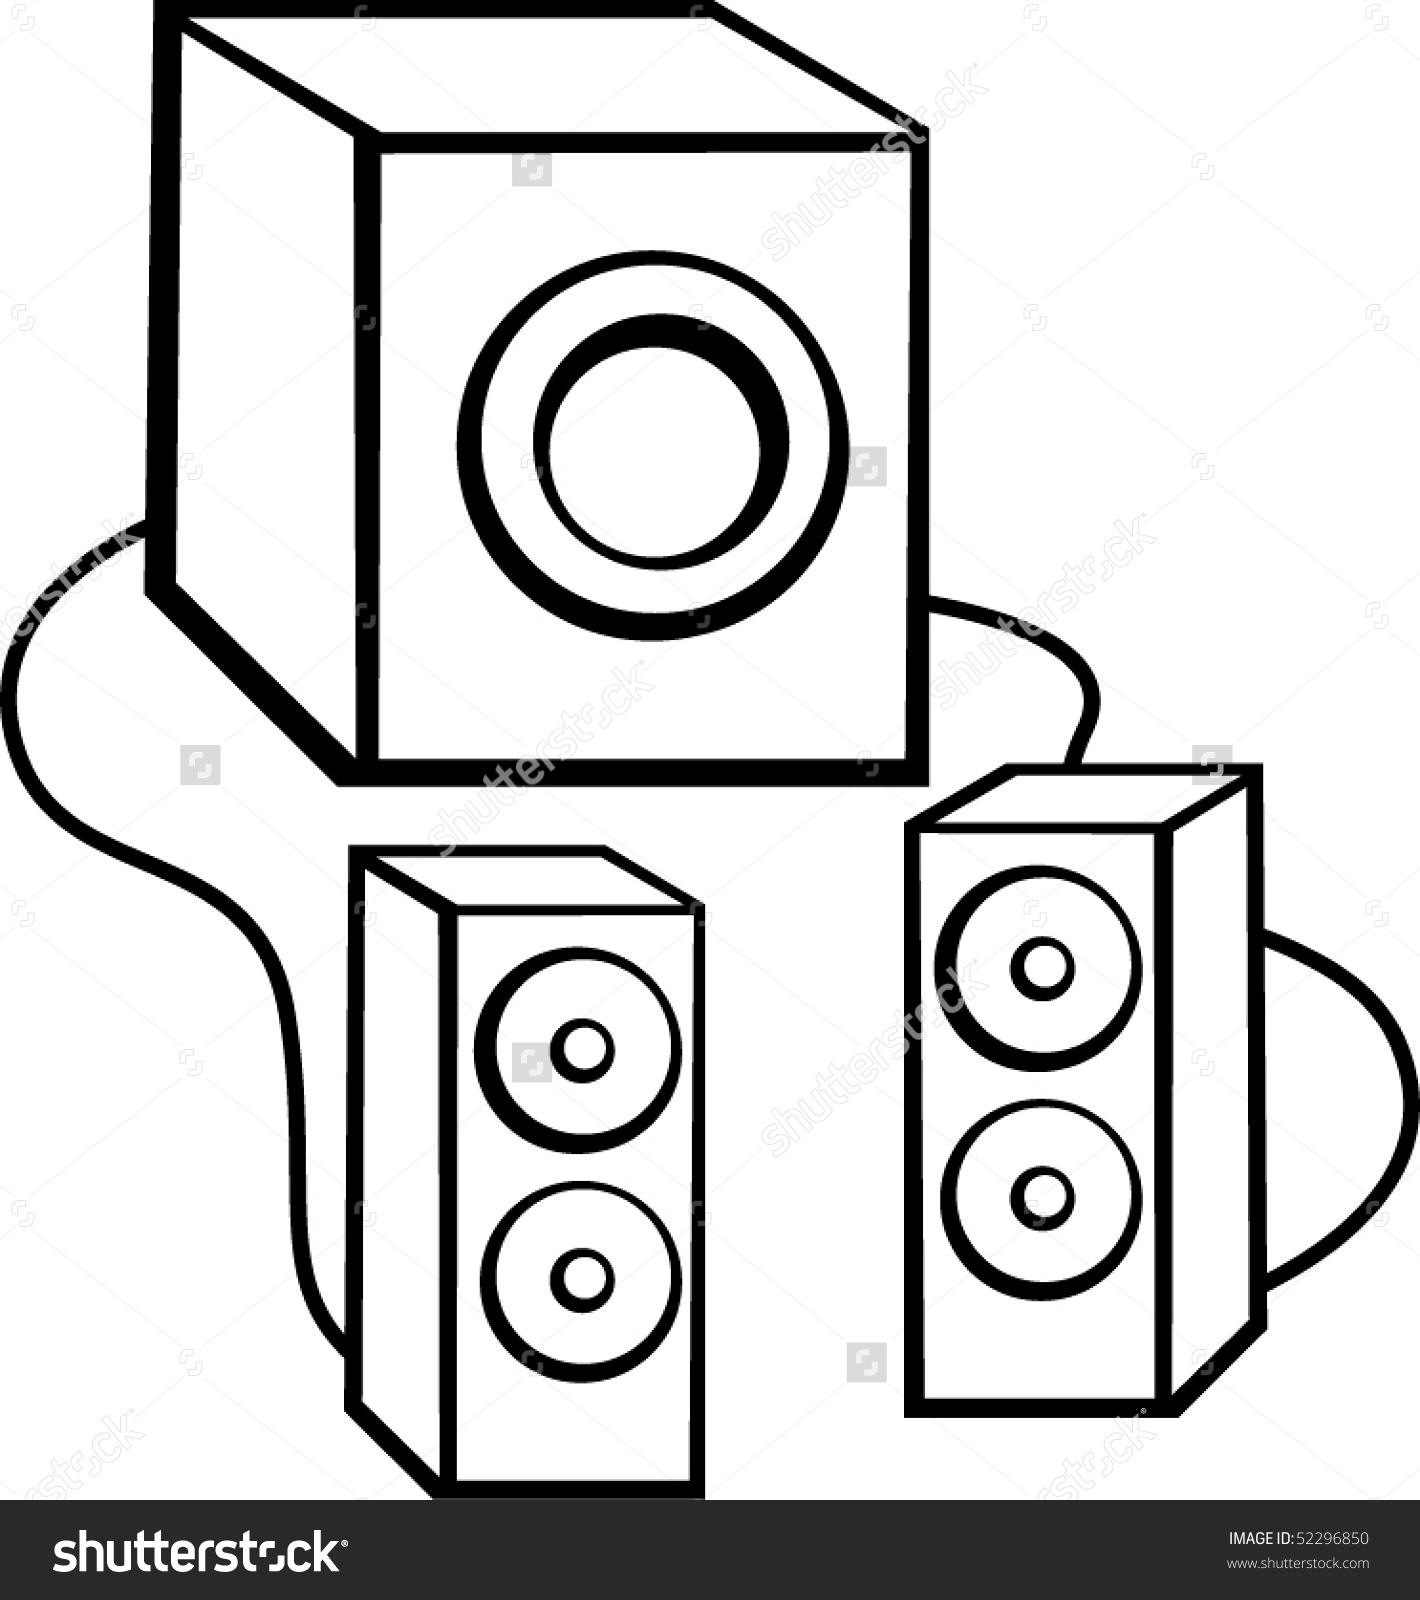 White speakers clipart image black and white library Speakers Clipart | Free download best Speakers Clipart on ... image black and white library